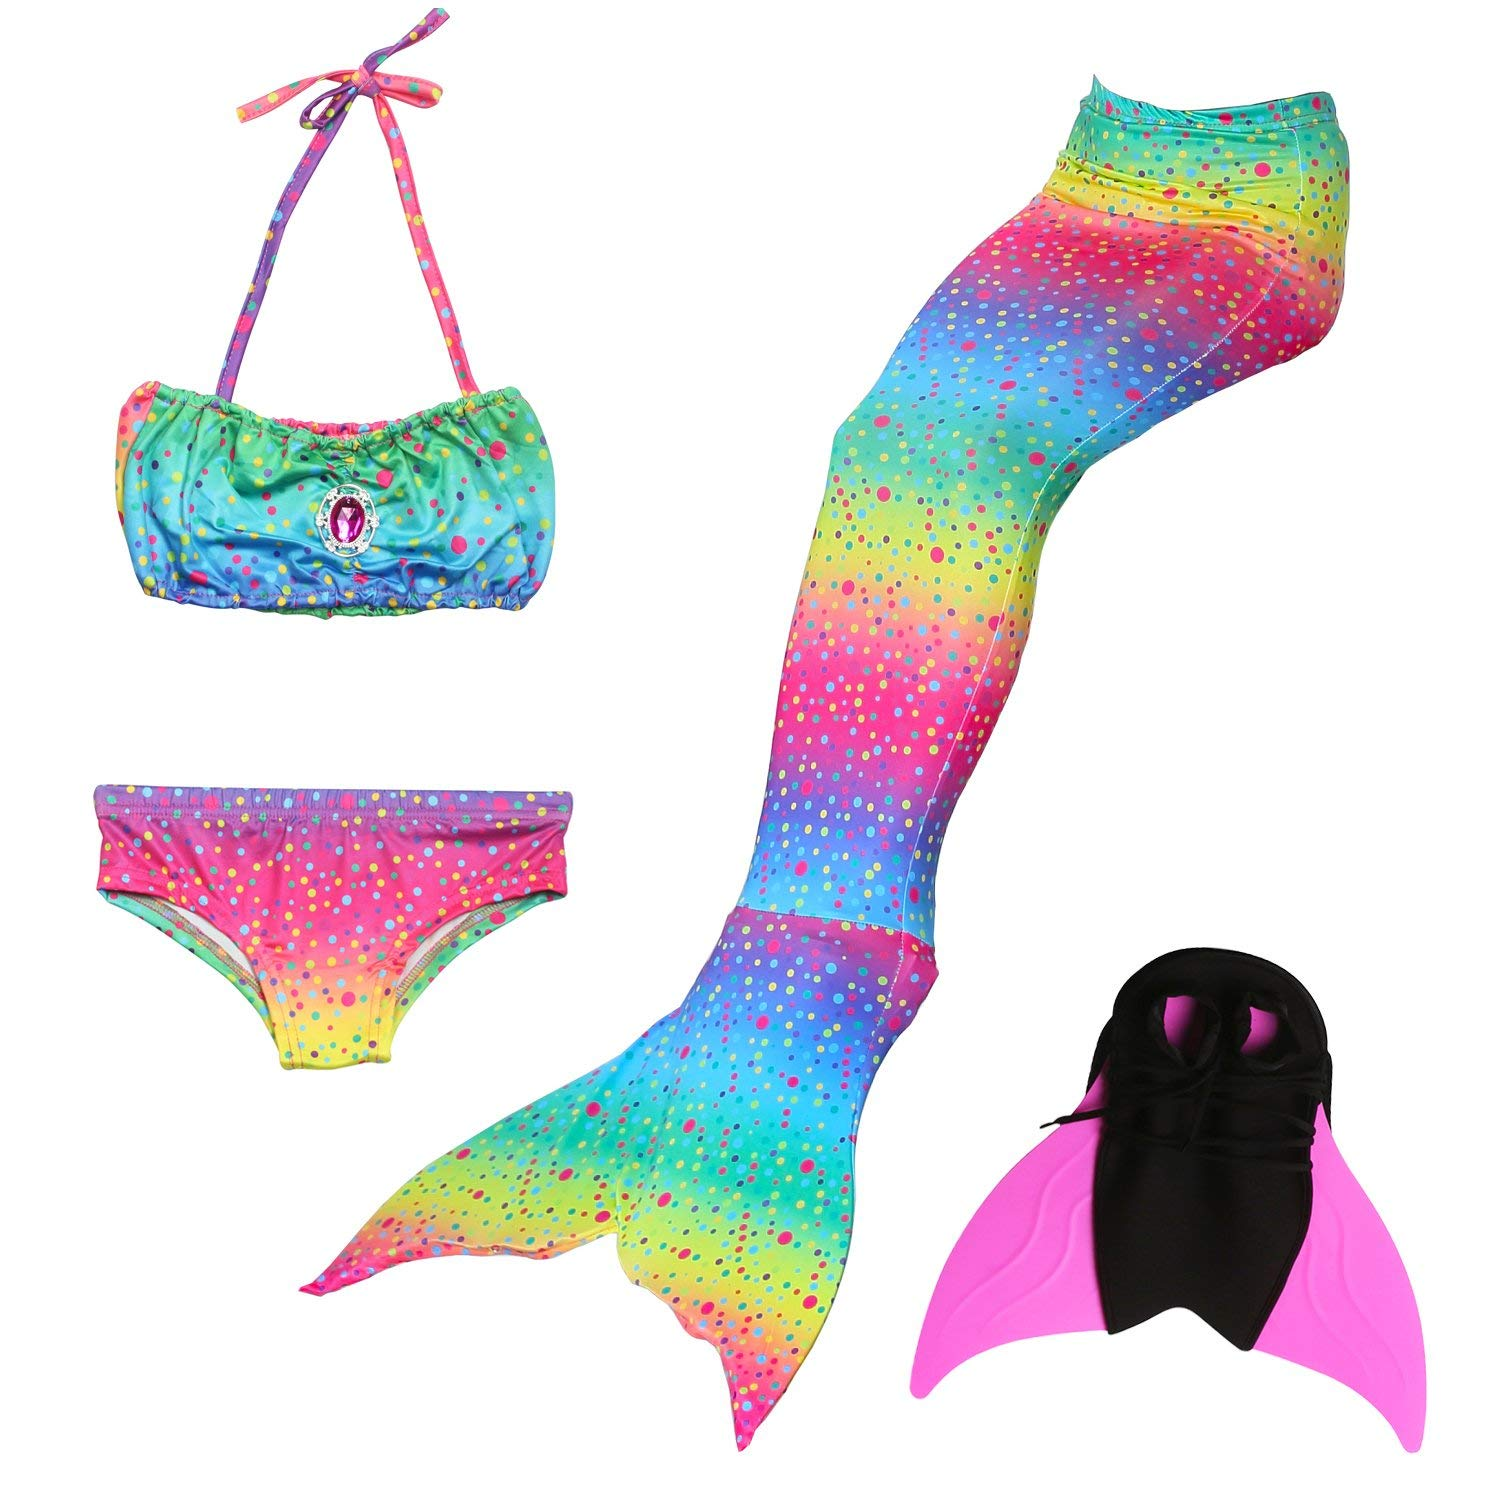 7a64b4fbd4af1 Get Quotations · Das beste Girls Mermaid Tail Swimsuit with Monofin Girl's  Mermaid Tail for Swimming,Colorful Swimmable